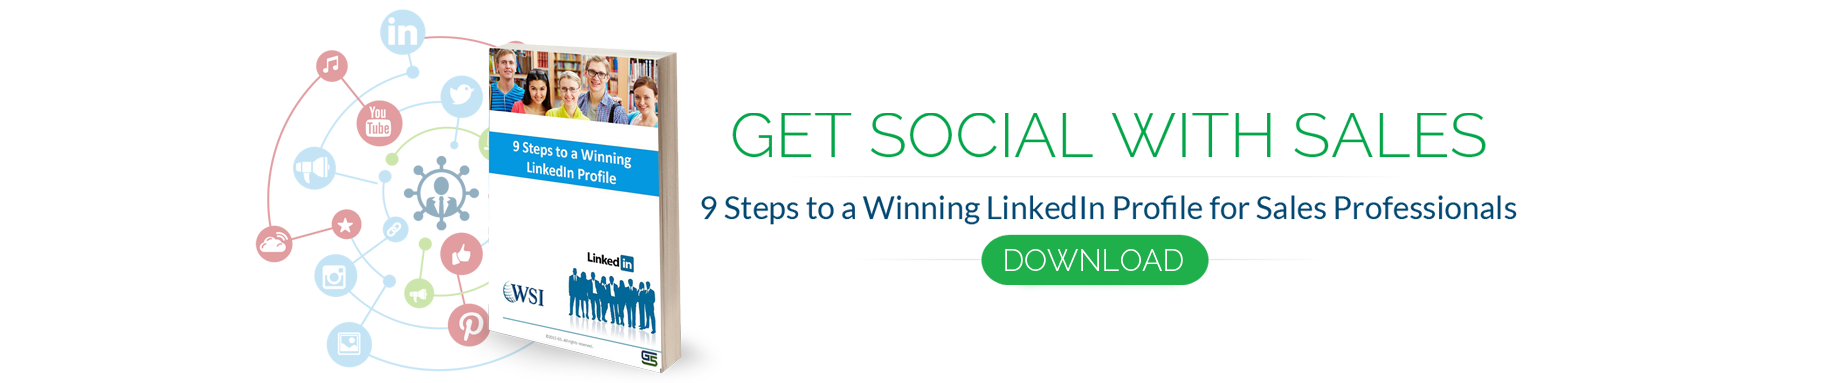 9 Steps to a Winning LinkedIn Profile for Sales Professionals